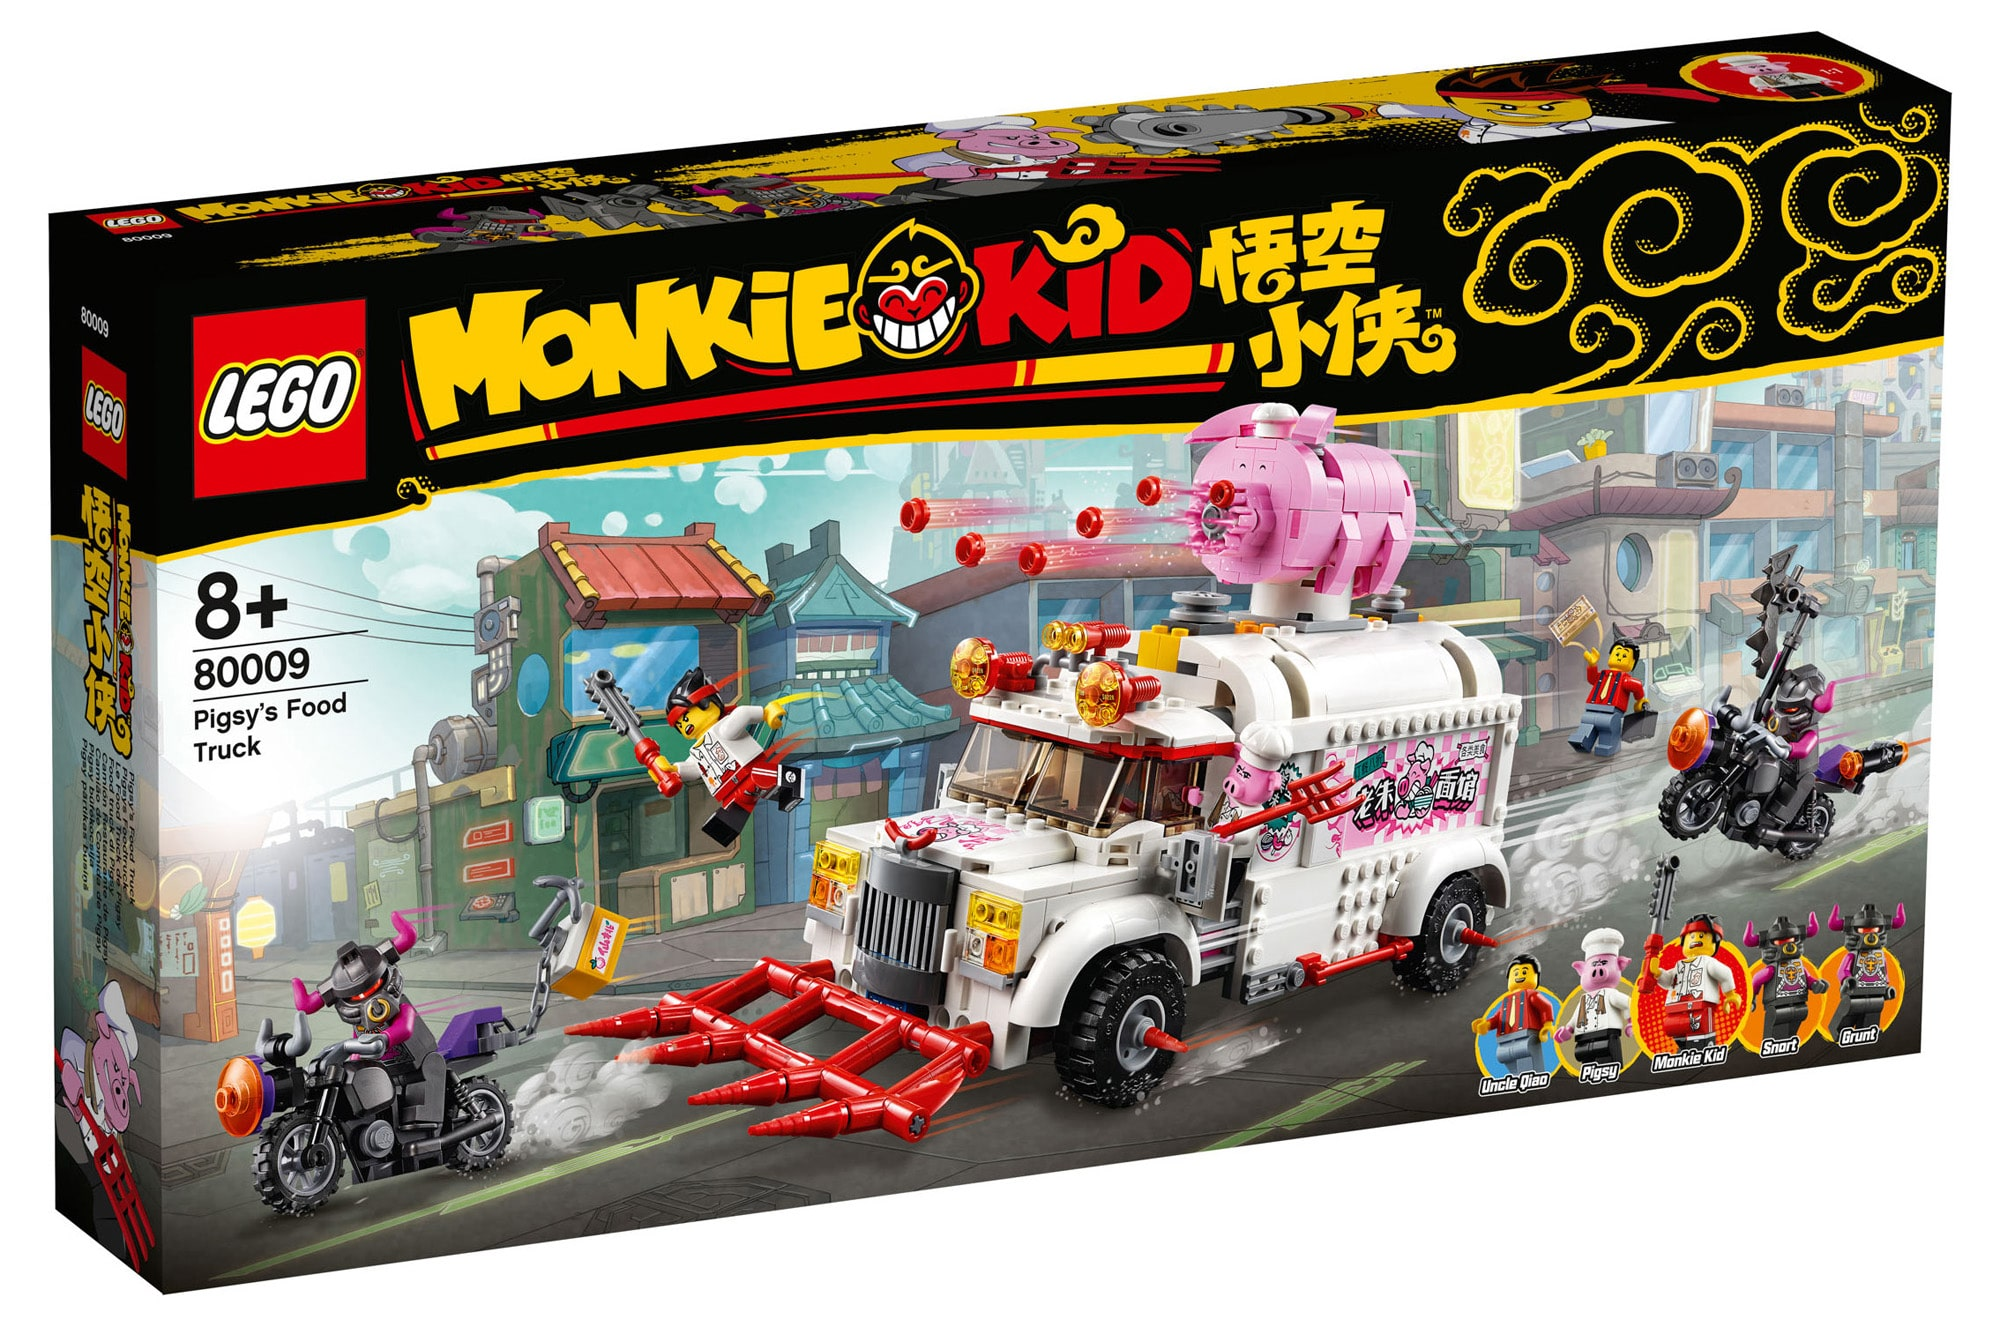 LEGO Monkie Kid 80009 Pigsys Food Truck